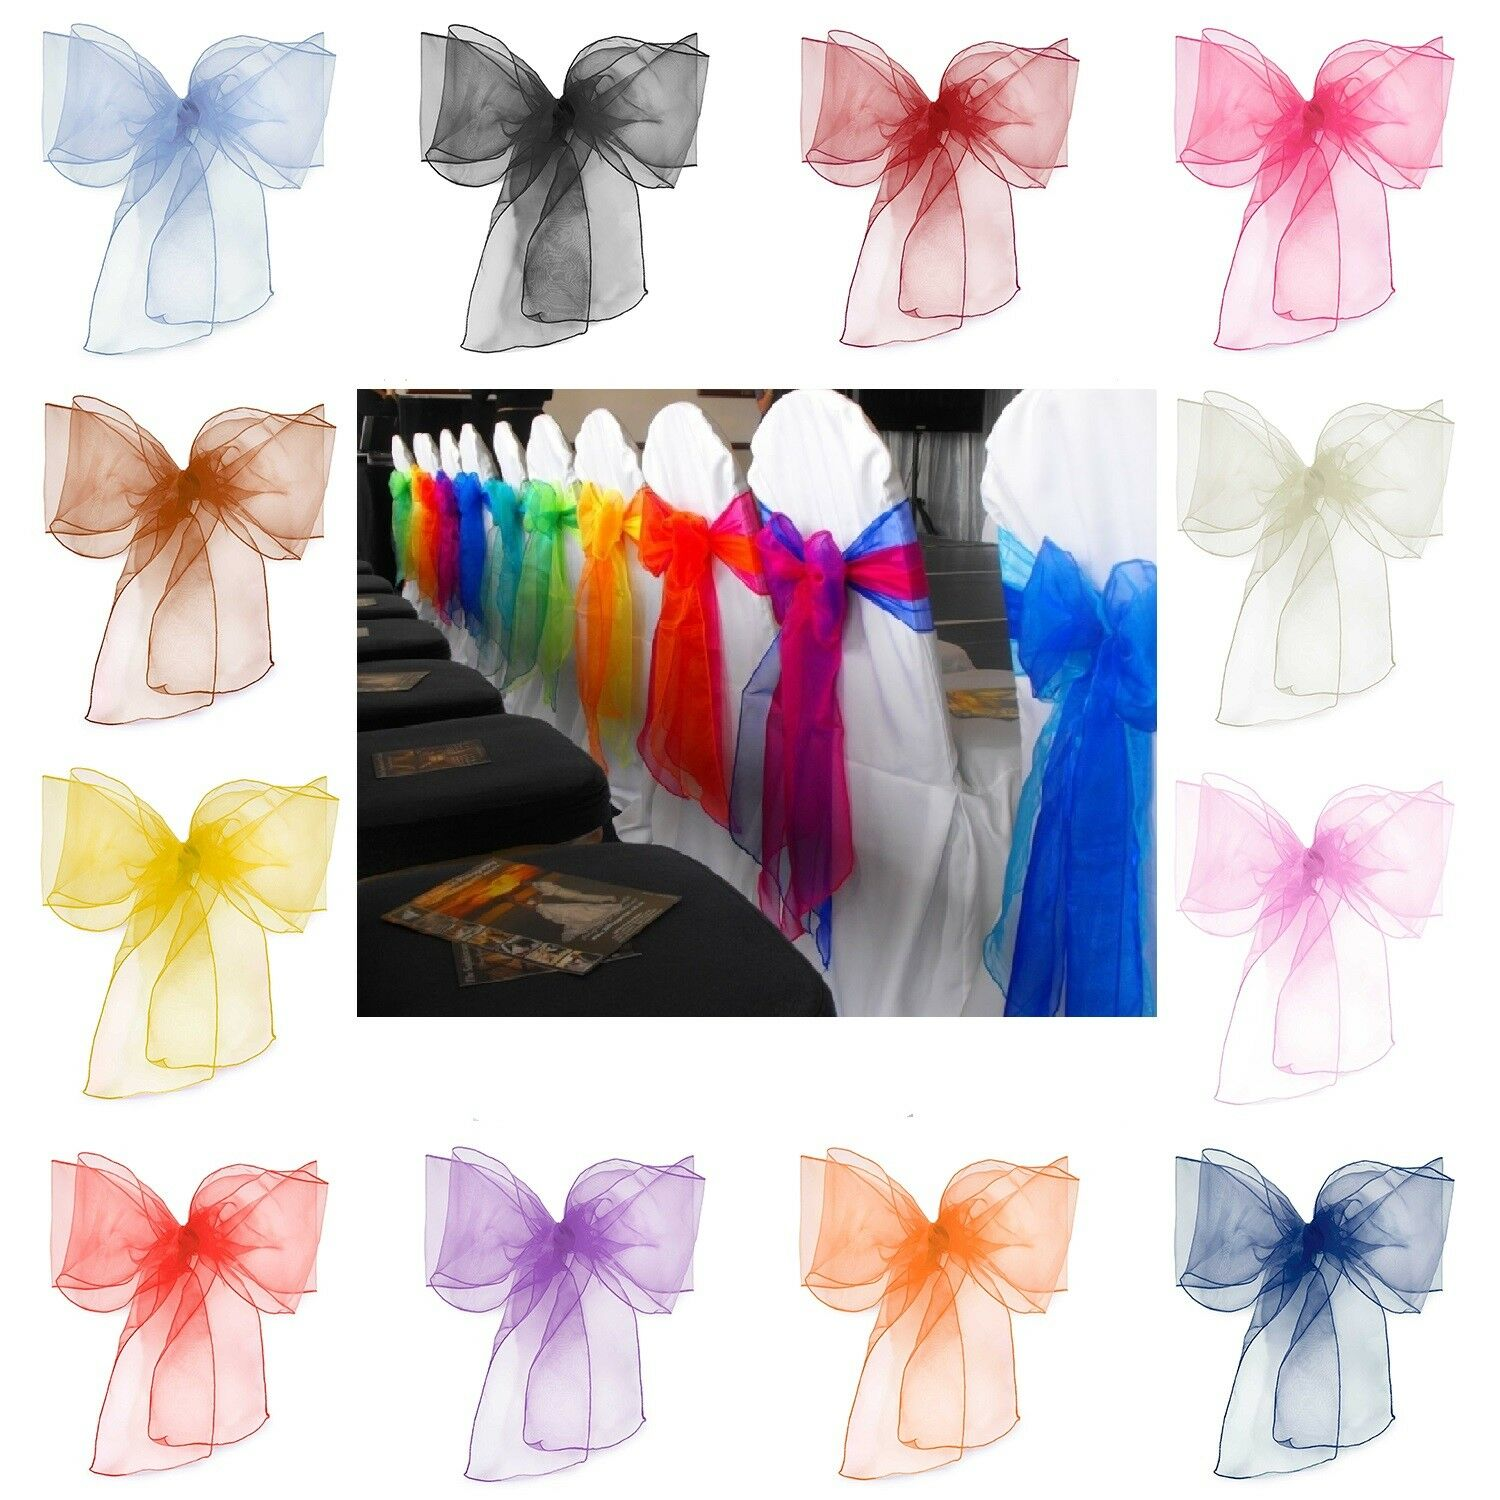 500 Mix Colourot Organza Sashes Chair Cover Fuller Bow Wider Wedding Party Decor